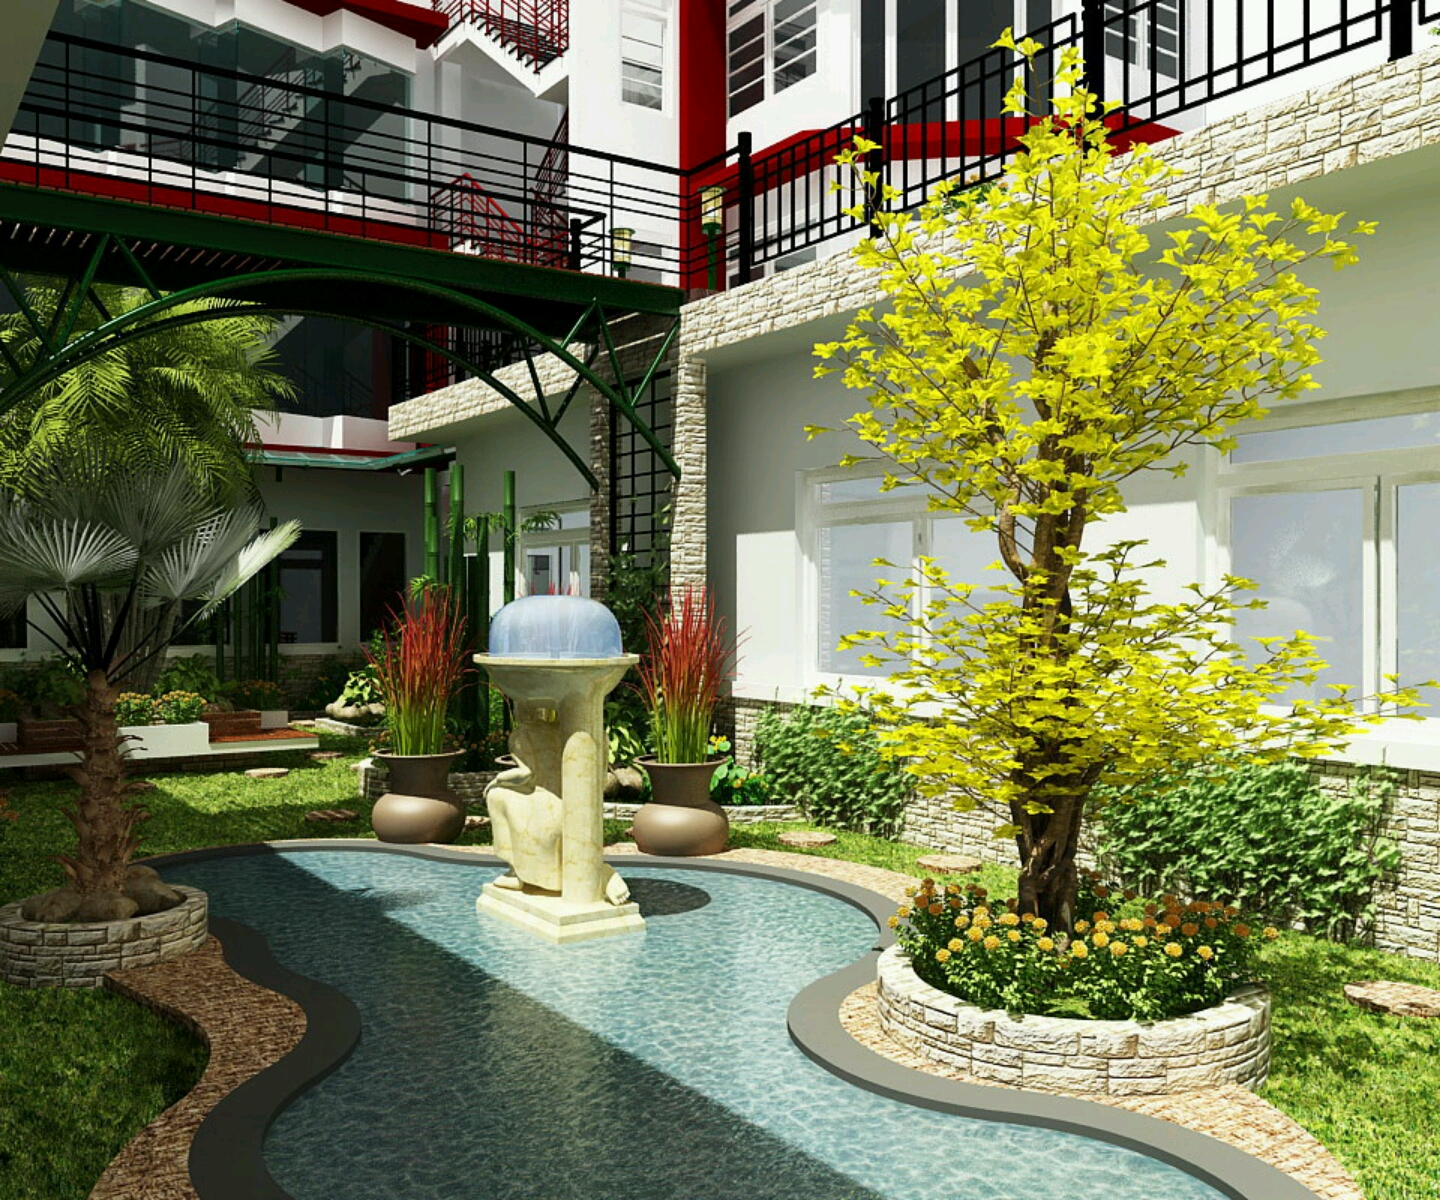 New blog here modern garden house design for Home garden design ideas